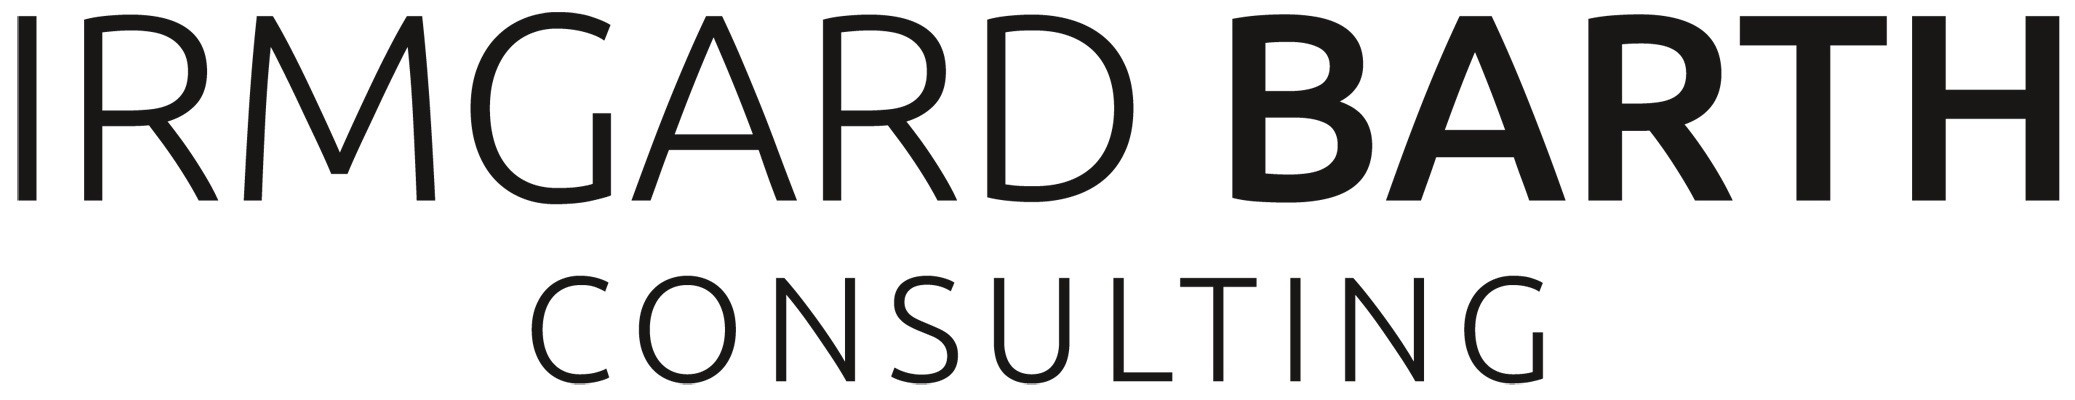 Irmgard Barth Consulting